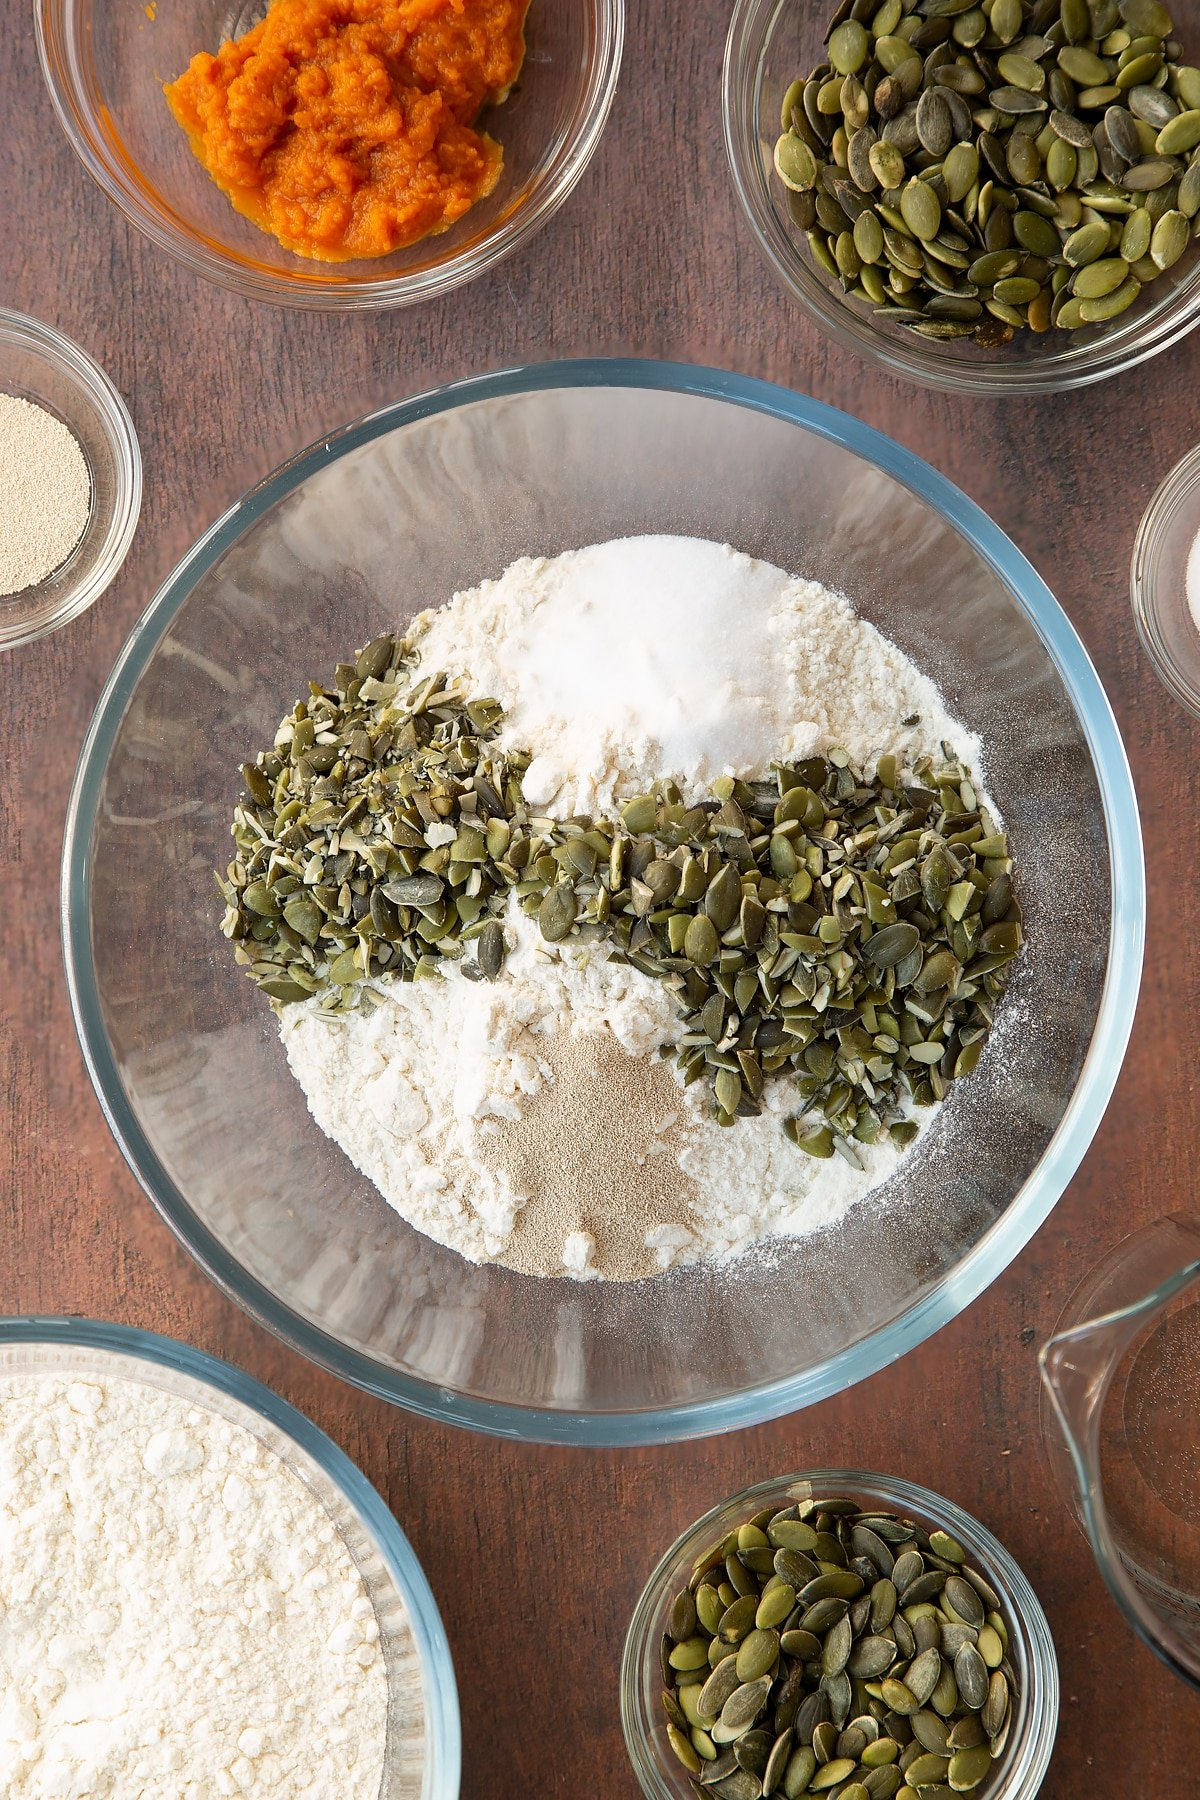 Flour, salt, yeast and pumpkin seeds in a glass mixing bowl. Ingredients to make a pumpkin seed bread recipe surround the bowl.